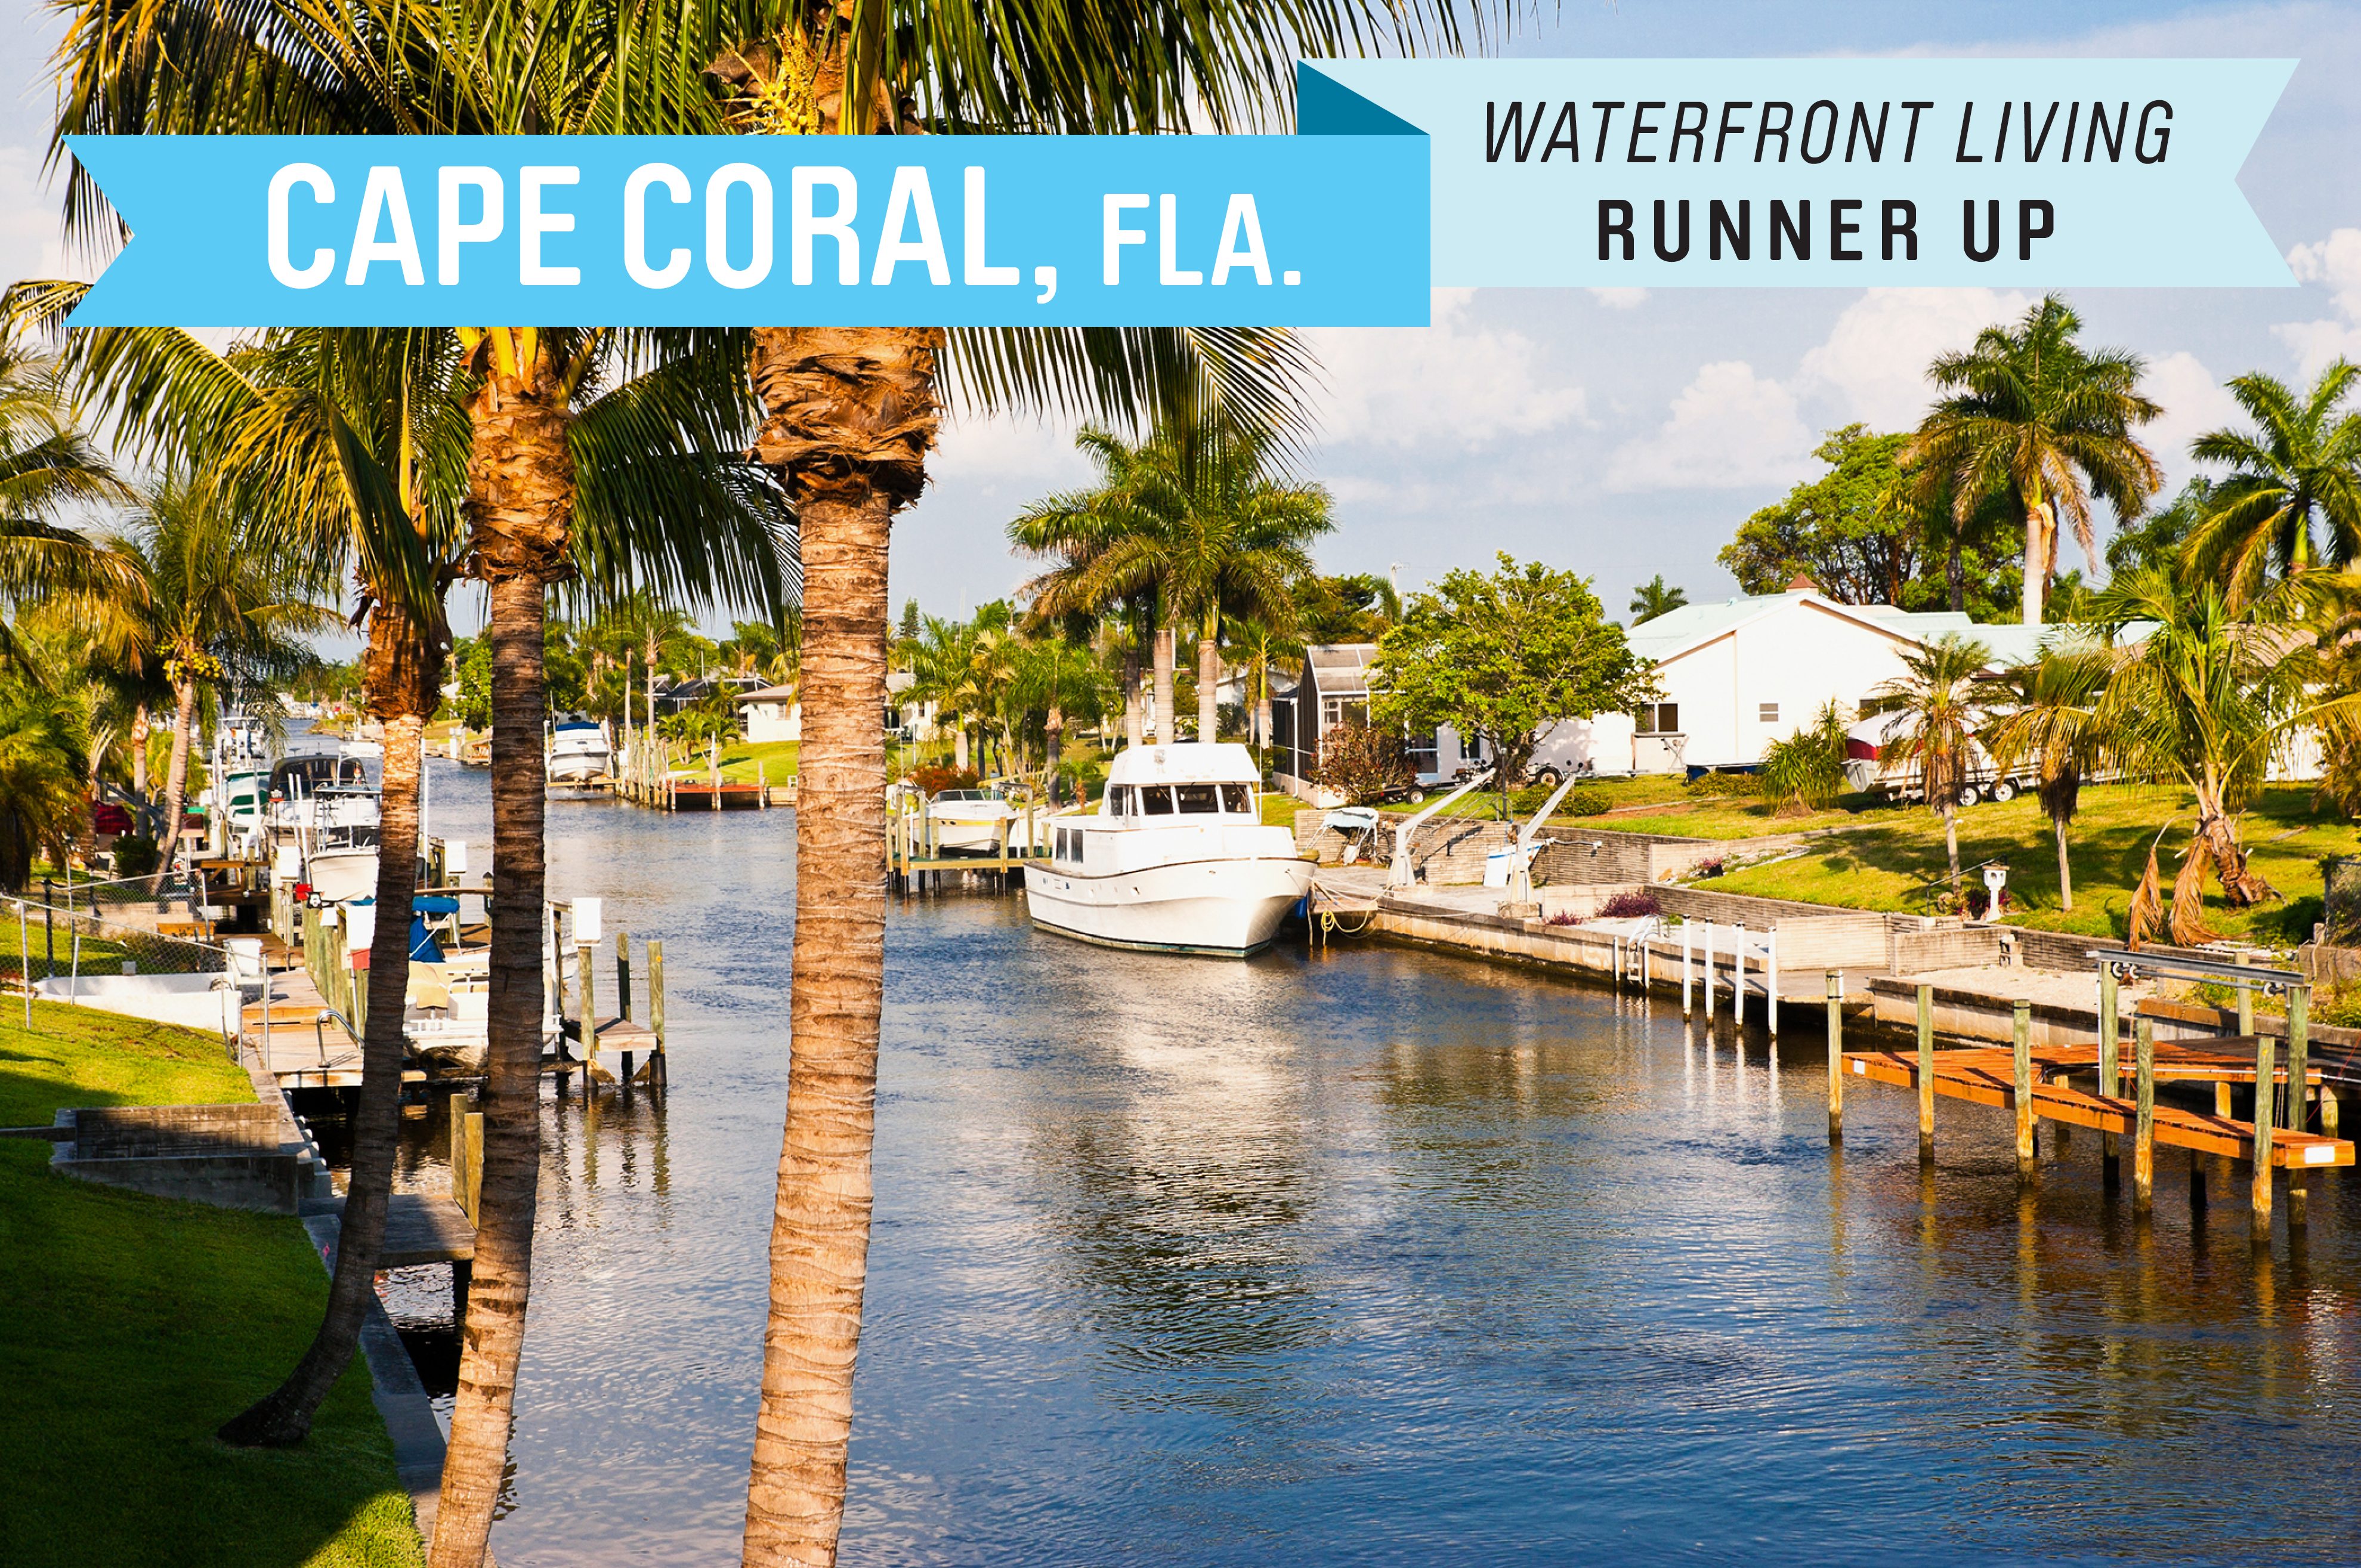 Two-thirds of Cape Coral are surrounded by water, either from the Gulf of Mexico or the Caloosahatchee River--and that doesn't include the 400 miles of canals. Florida residents pay no state income tax. The median home price in Cape Coral is $144,900.